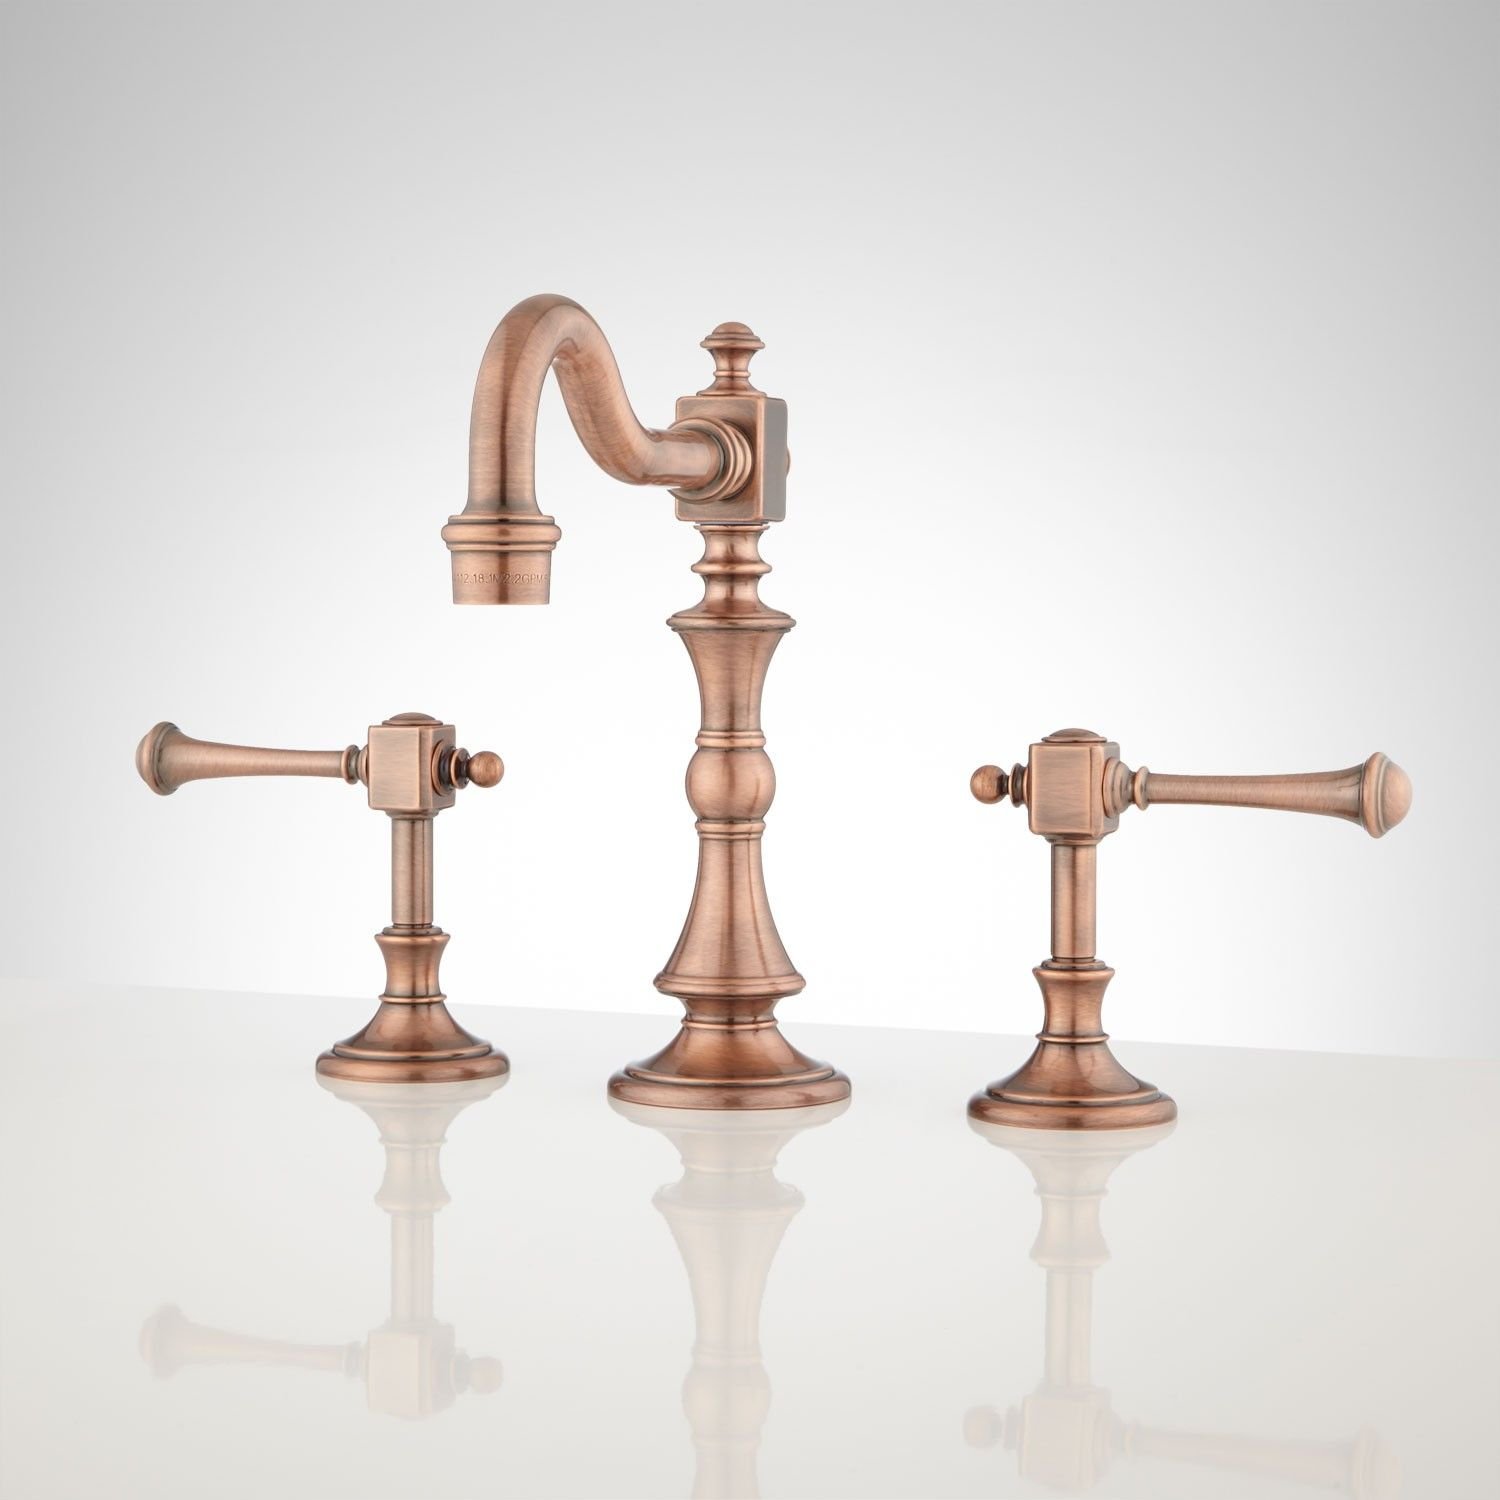 Vintage Widespread Bathroom Faucet - Lever Handles | Widespread ...